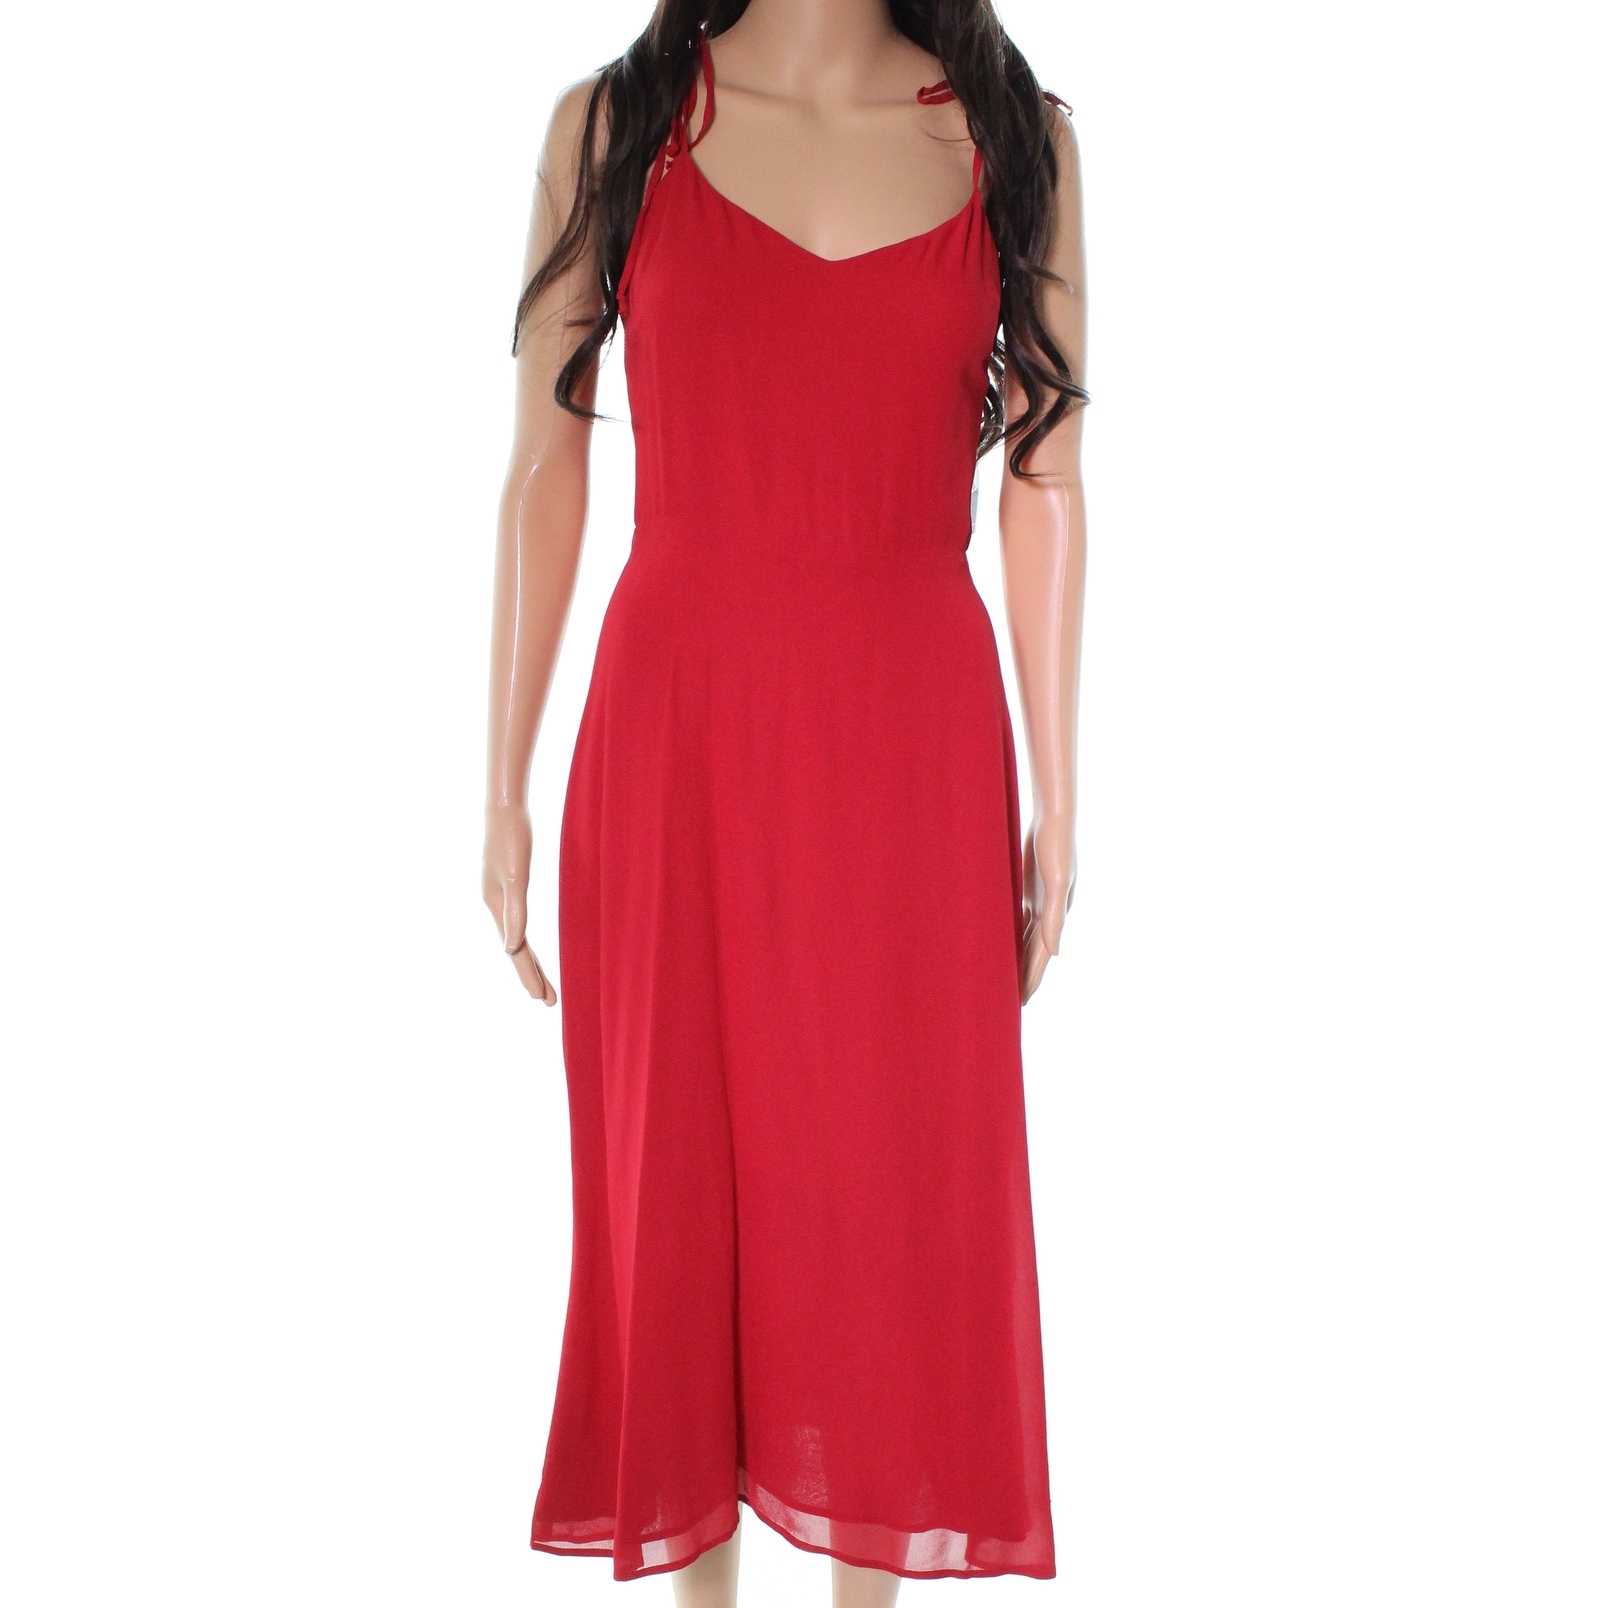 2f95a1ddf058 Shop Reformation Red Smocked Back Women's Size 6 A-Line Midi Dress - Free  Shipping Today - Overstock - 27757078